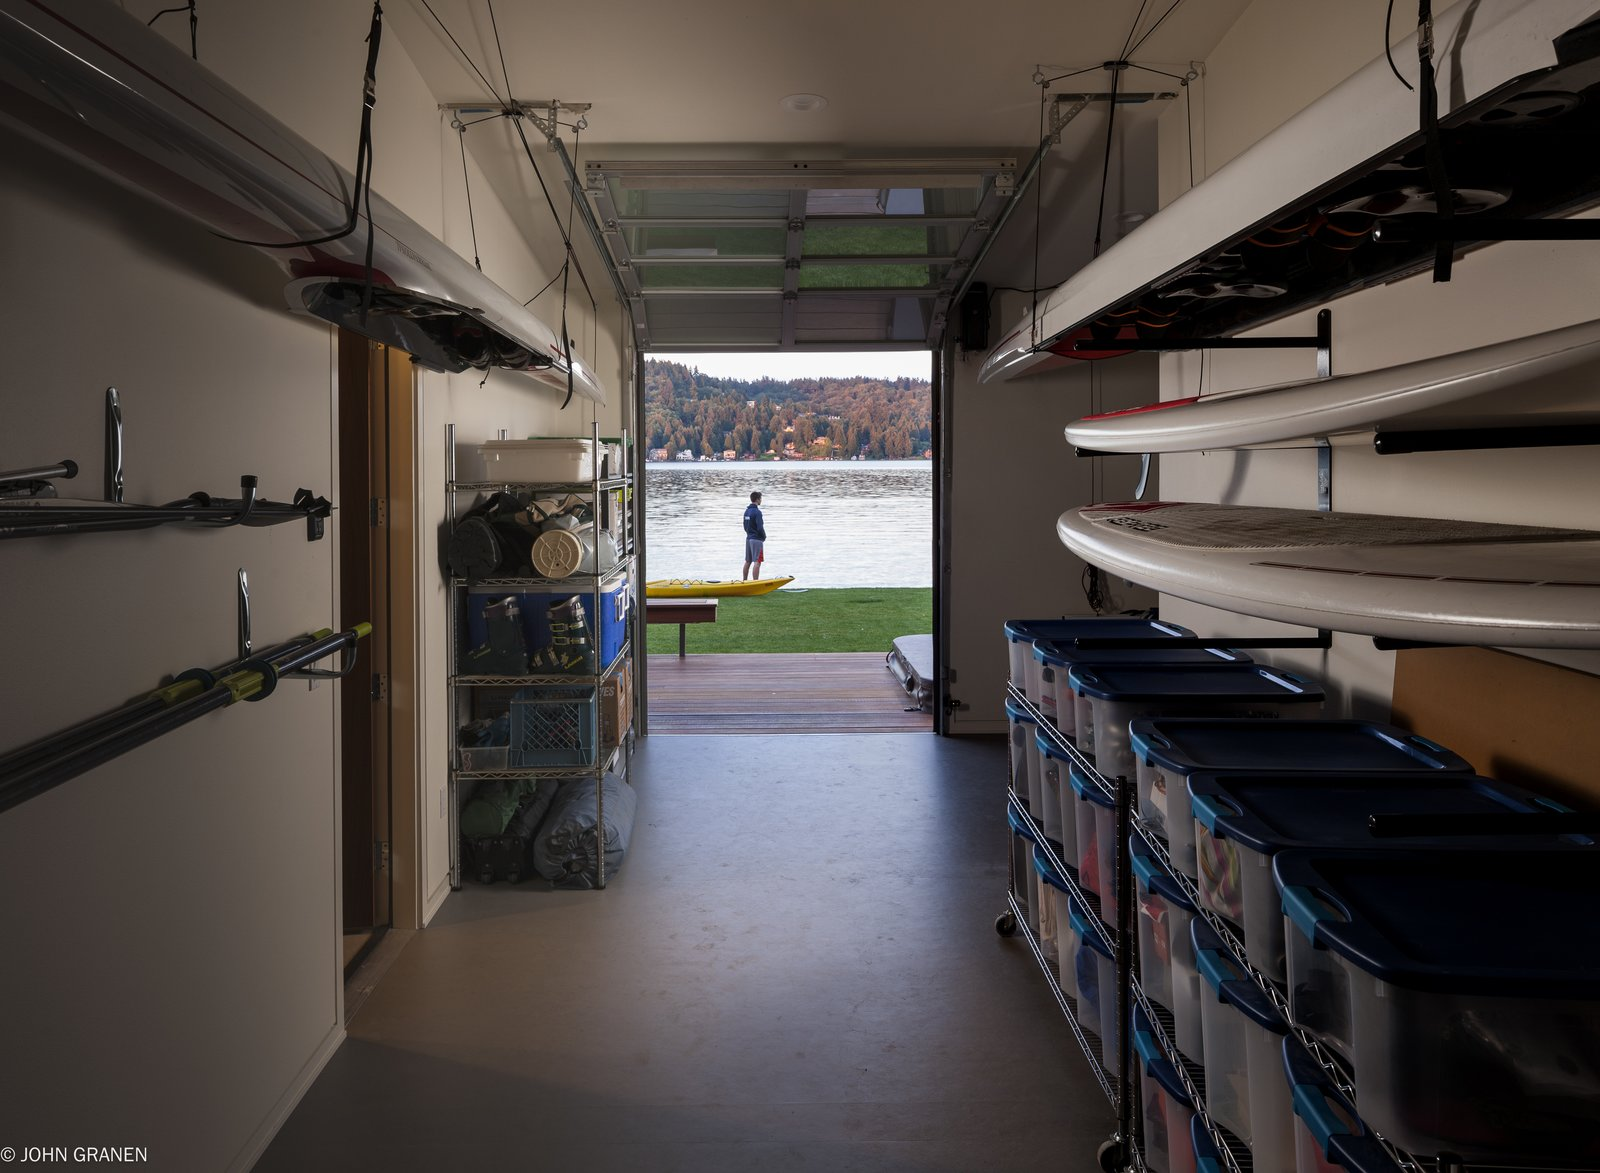 """""""They are a very active family, with rowing and basketball at the top of the list,"""" Witt says. """"Other activities include water sports, volleyball, and entertaining—even in the winter months, which have short, usually damp days."""" Witt created a garage deep enough to hang rowing shelves and enclosed it in a Wayne Dalton garage door.  Garage by Jonathan Minori from A Richly Detailed Seattle Home Built Around a Family's Active Lifestyle"""